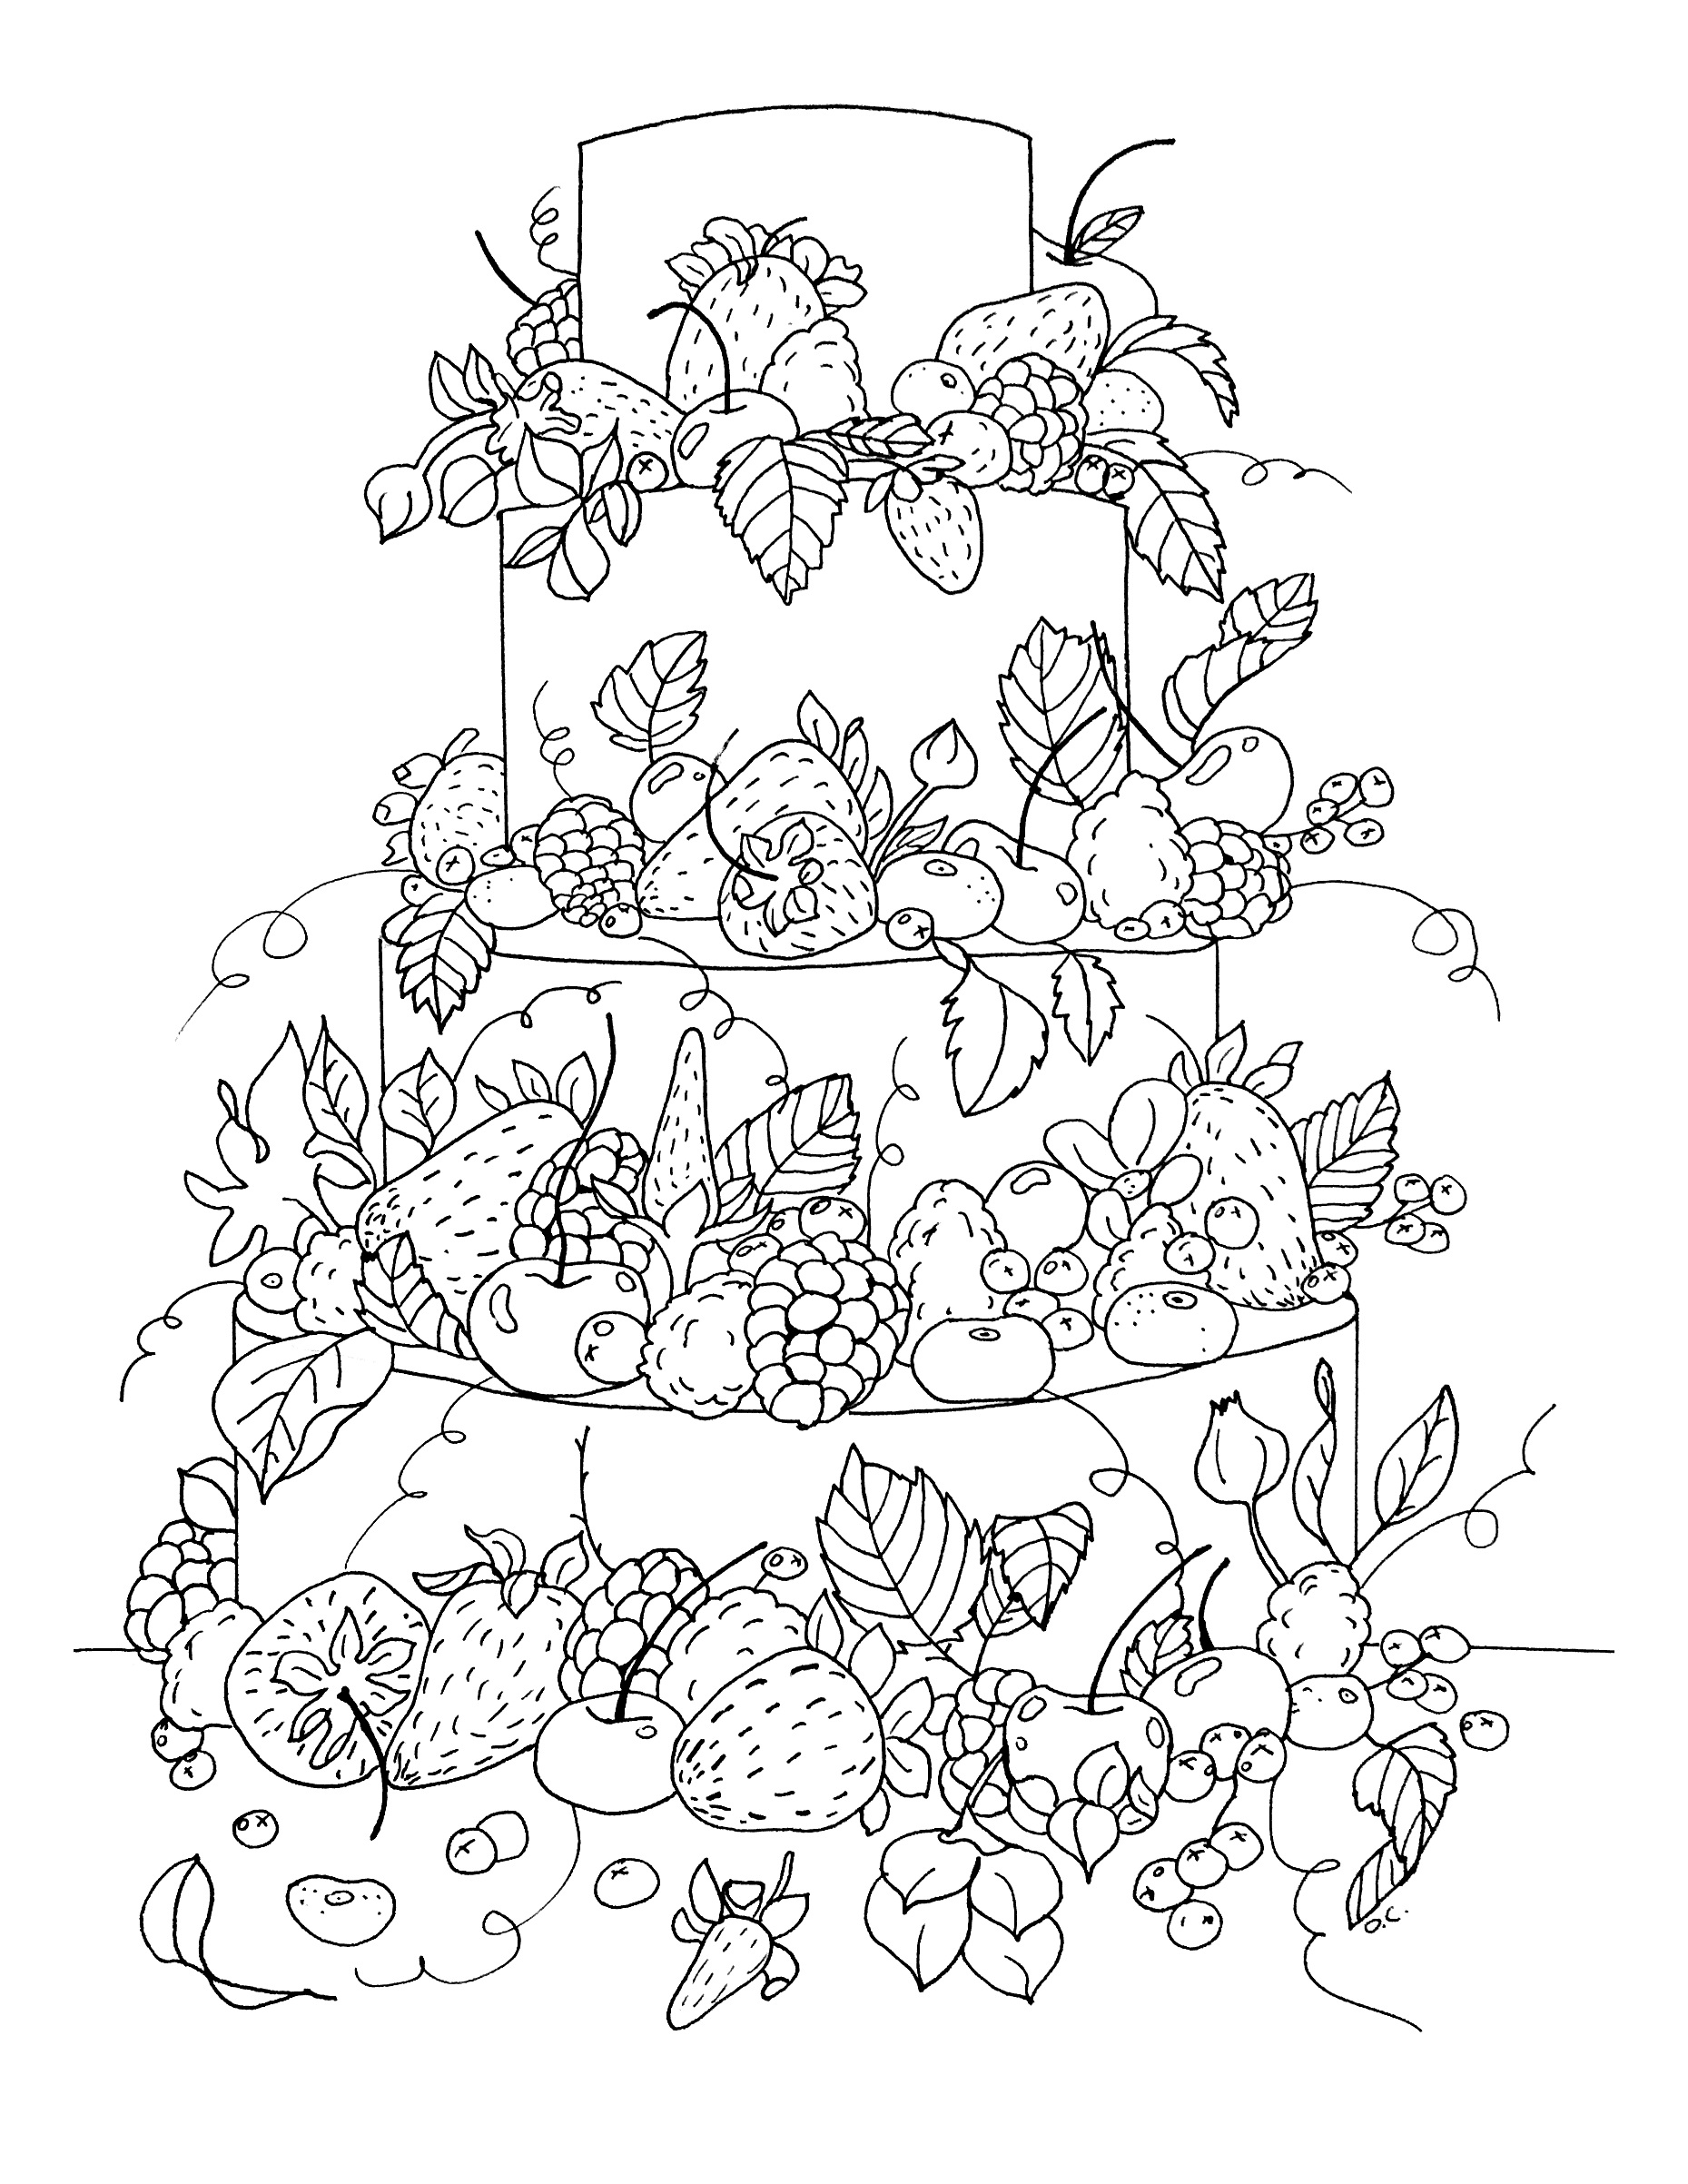 Big Fruit Cake Cupcakes Adult Coloring Pages